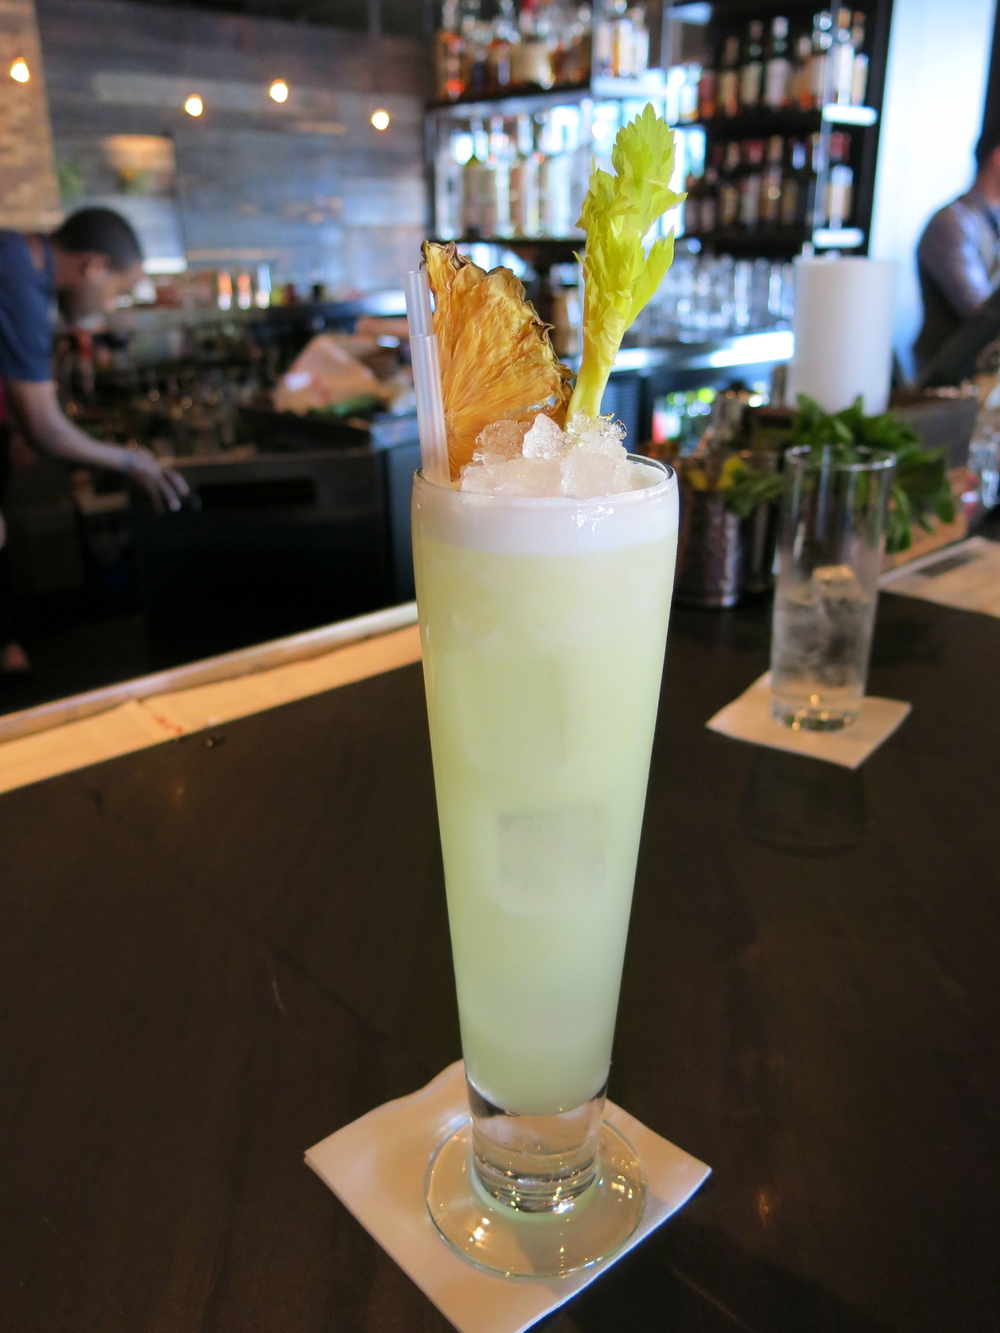 The Bitter Mendez, made with Milagro tequila, pineapple juice, fresh lime, and celery bitters.